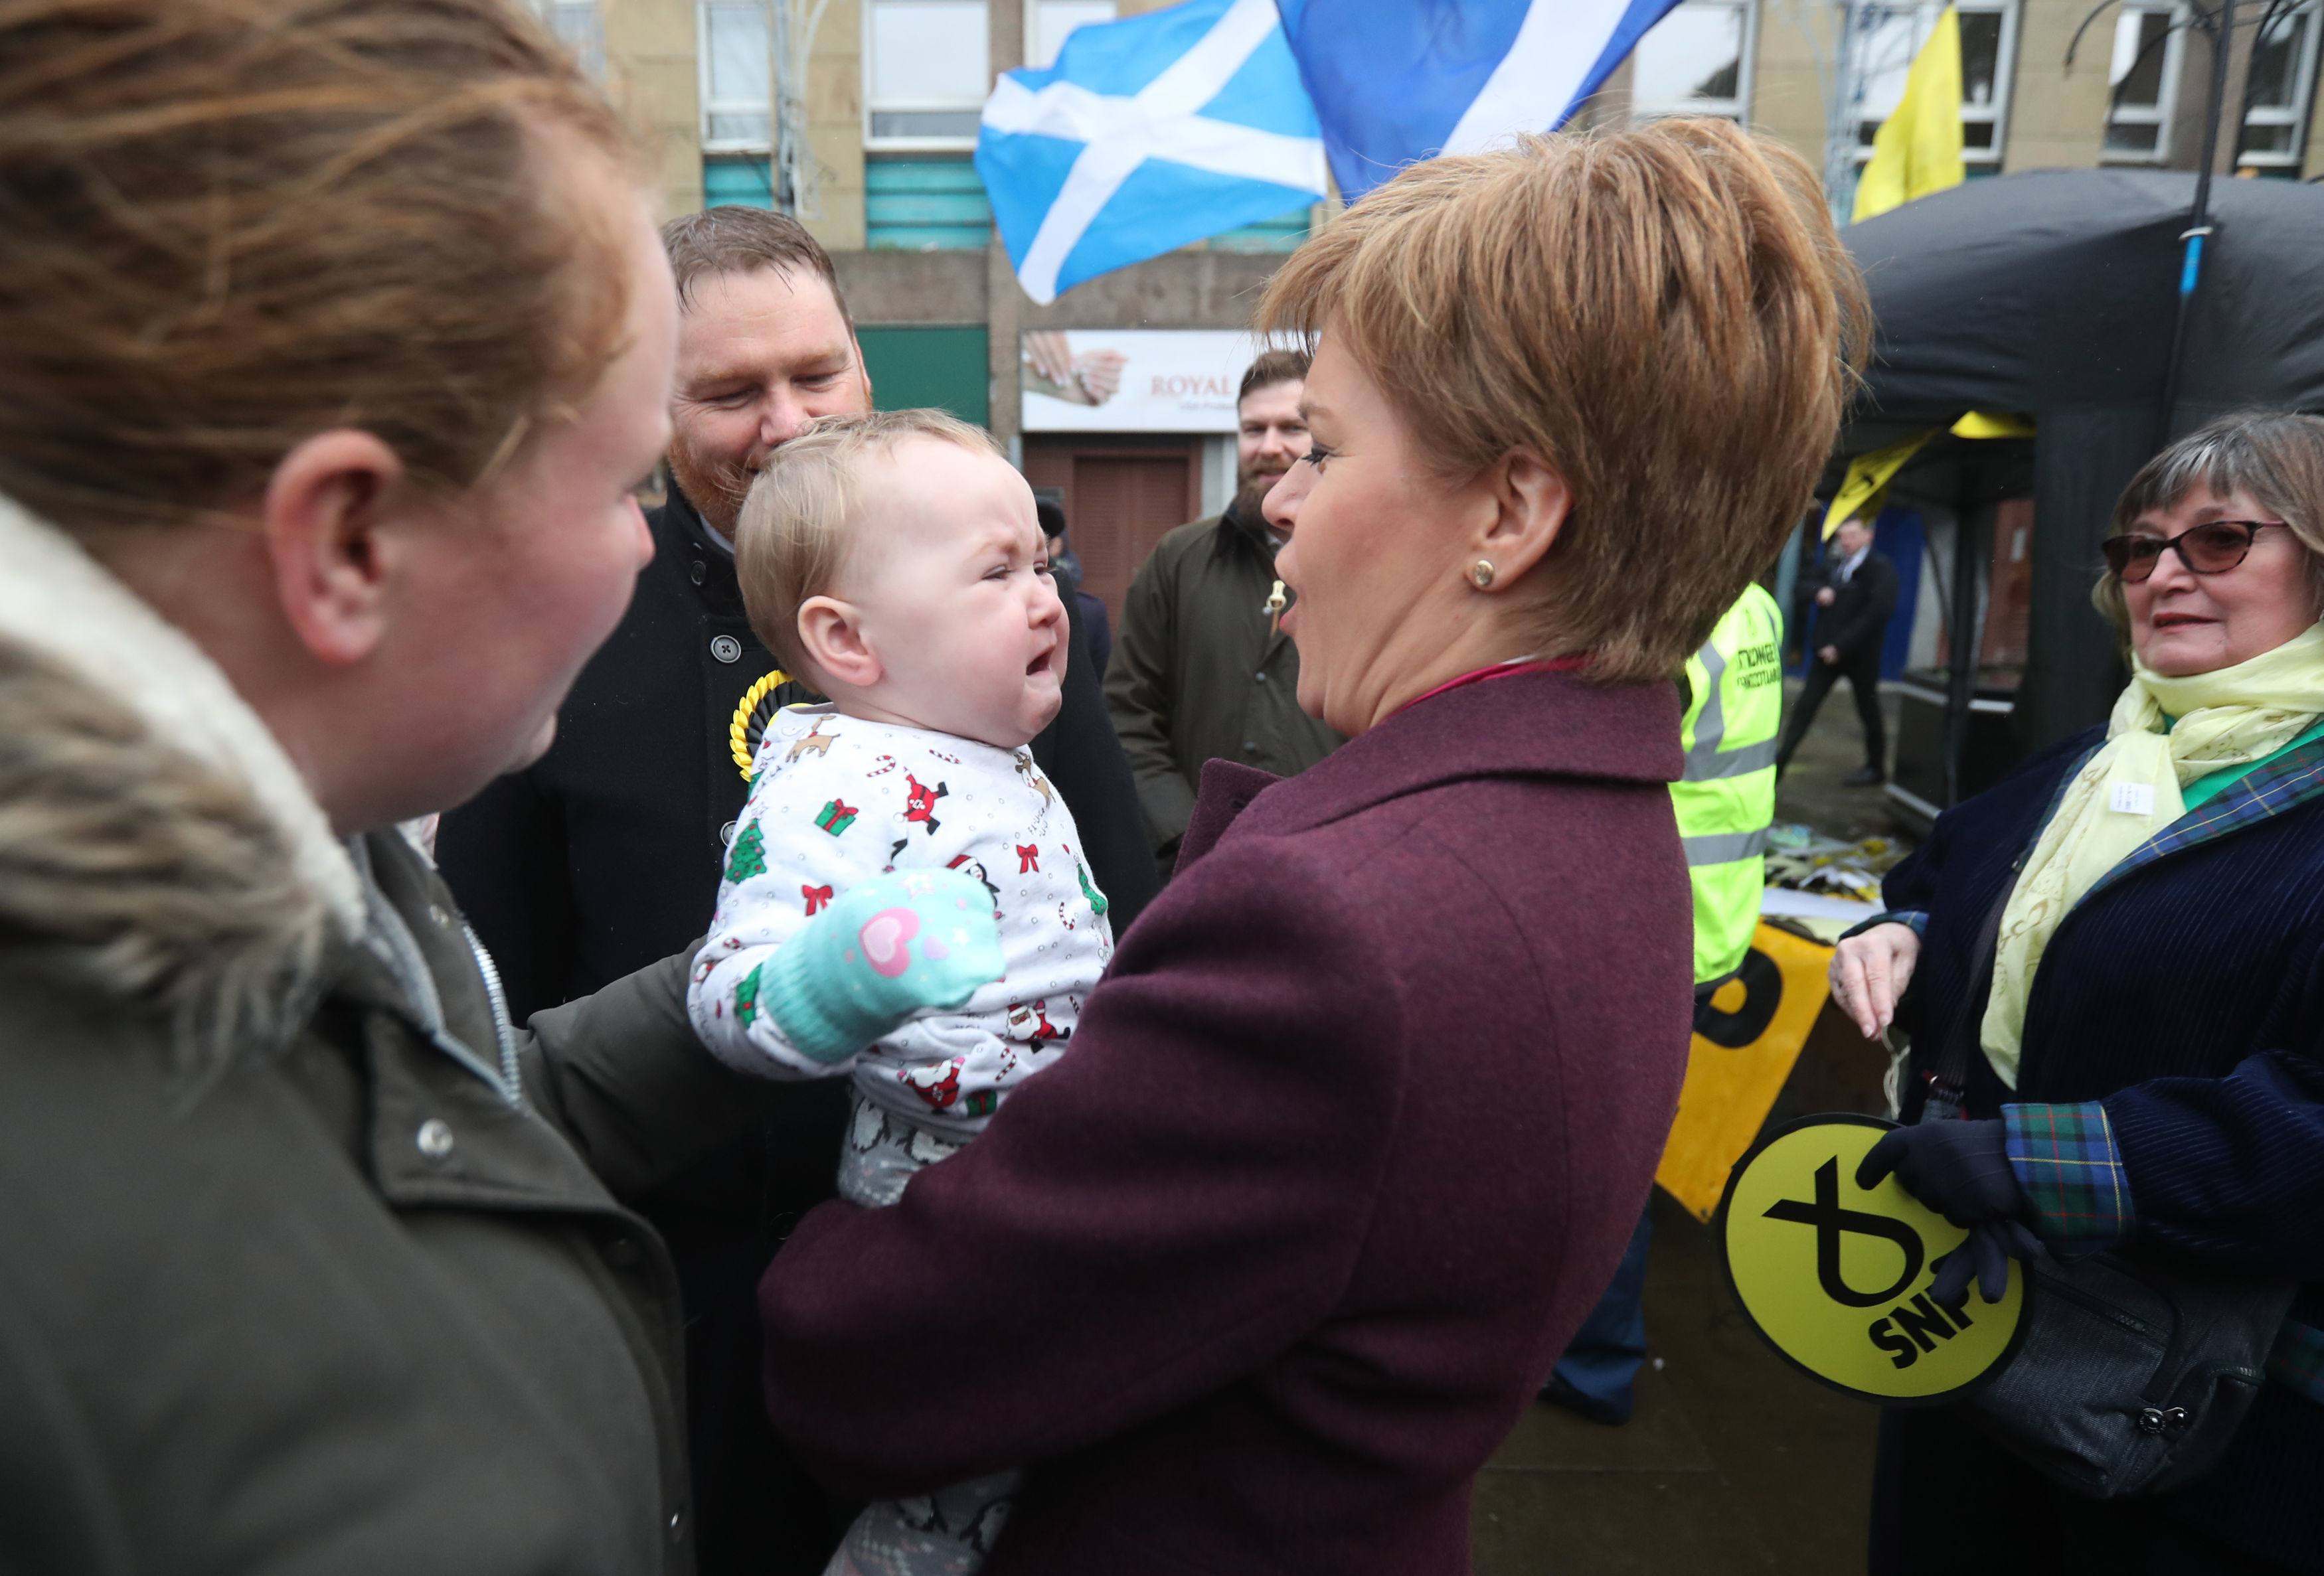 SNP leader Nicola Sturgeon holds a baby in Dalkeith, while on the General Election campaign trail in Scotland. PA Photo. Picture date: Wednesday December 4, 2019. See PA story POLITICS Election . Photo credit should read: Andrew Milligan/PA Wire